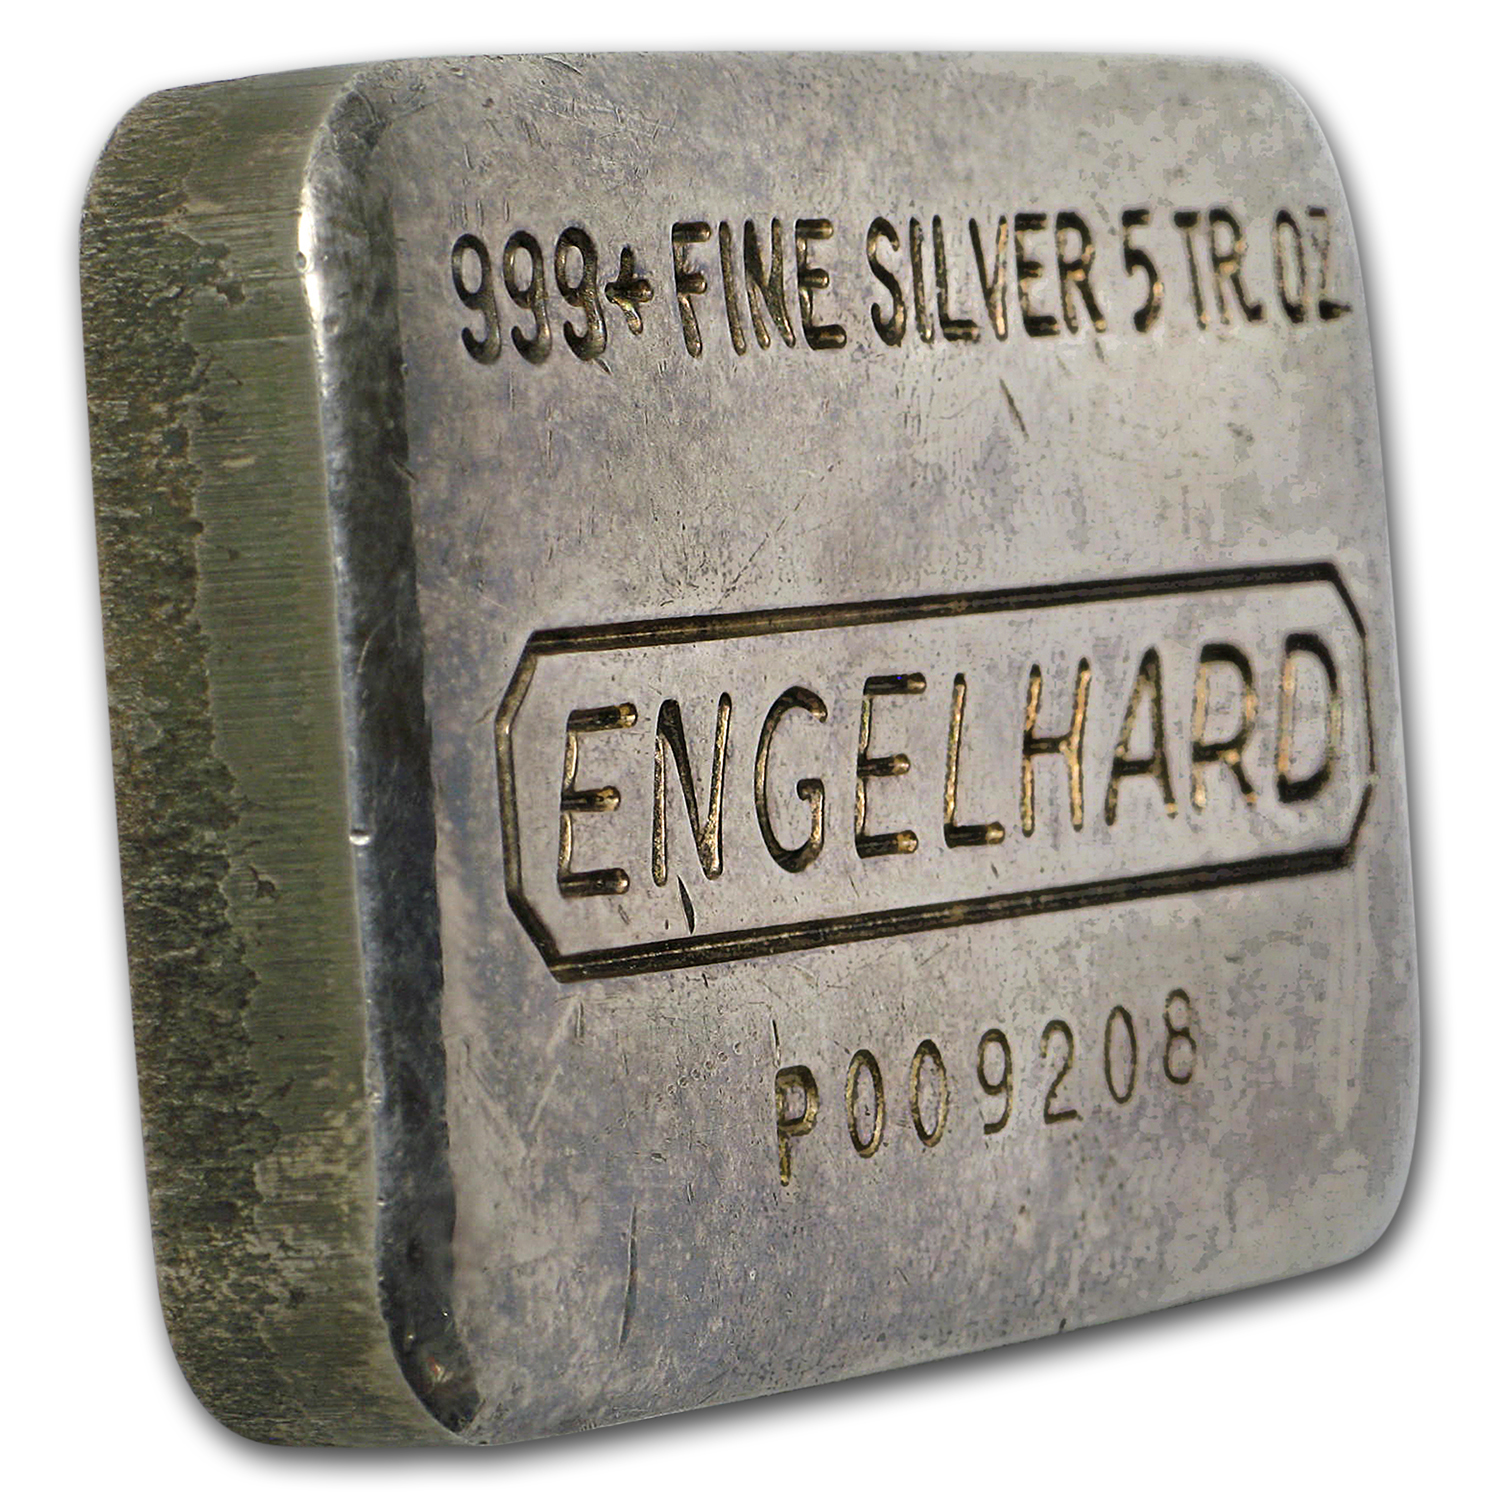 5 oz Silver Bar - Engelhard (Pressed)